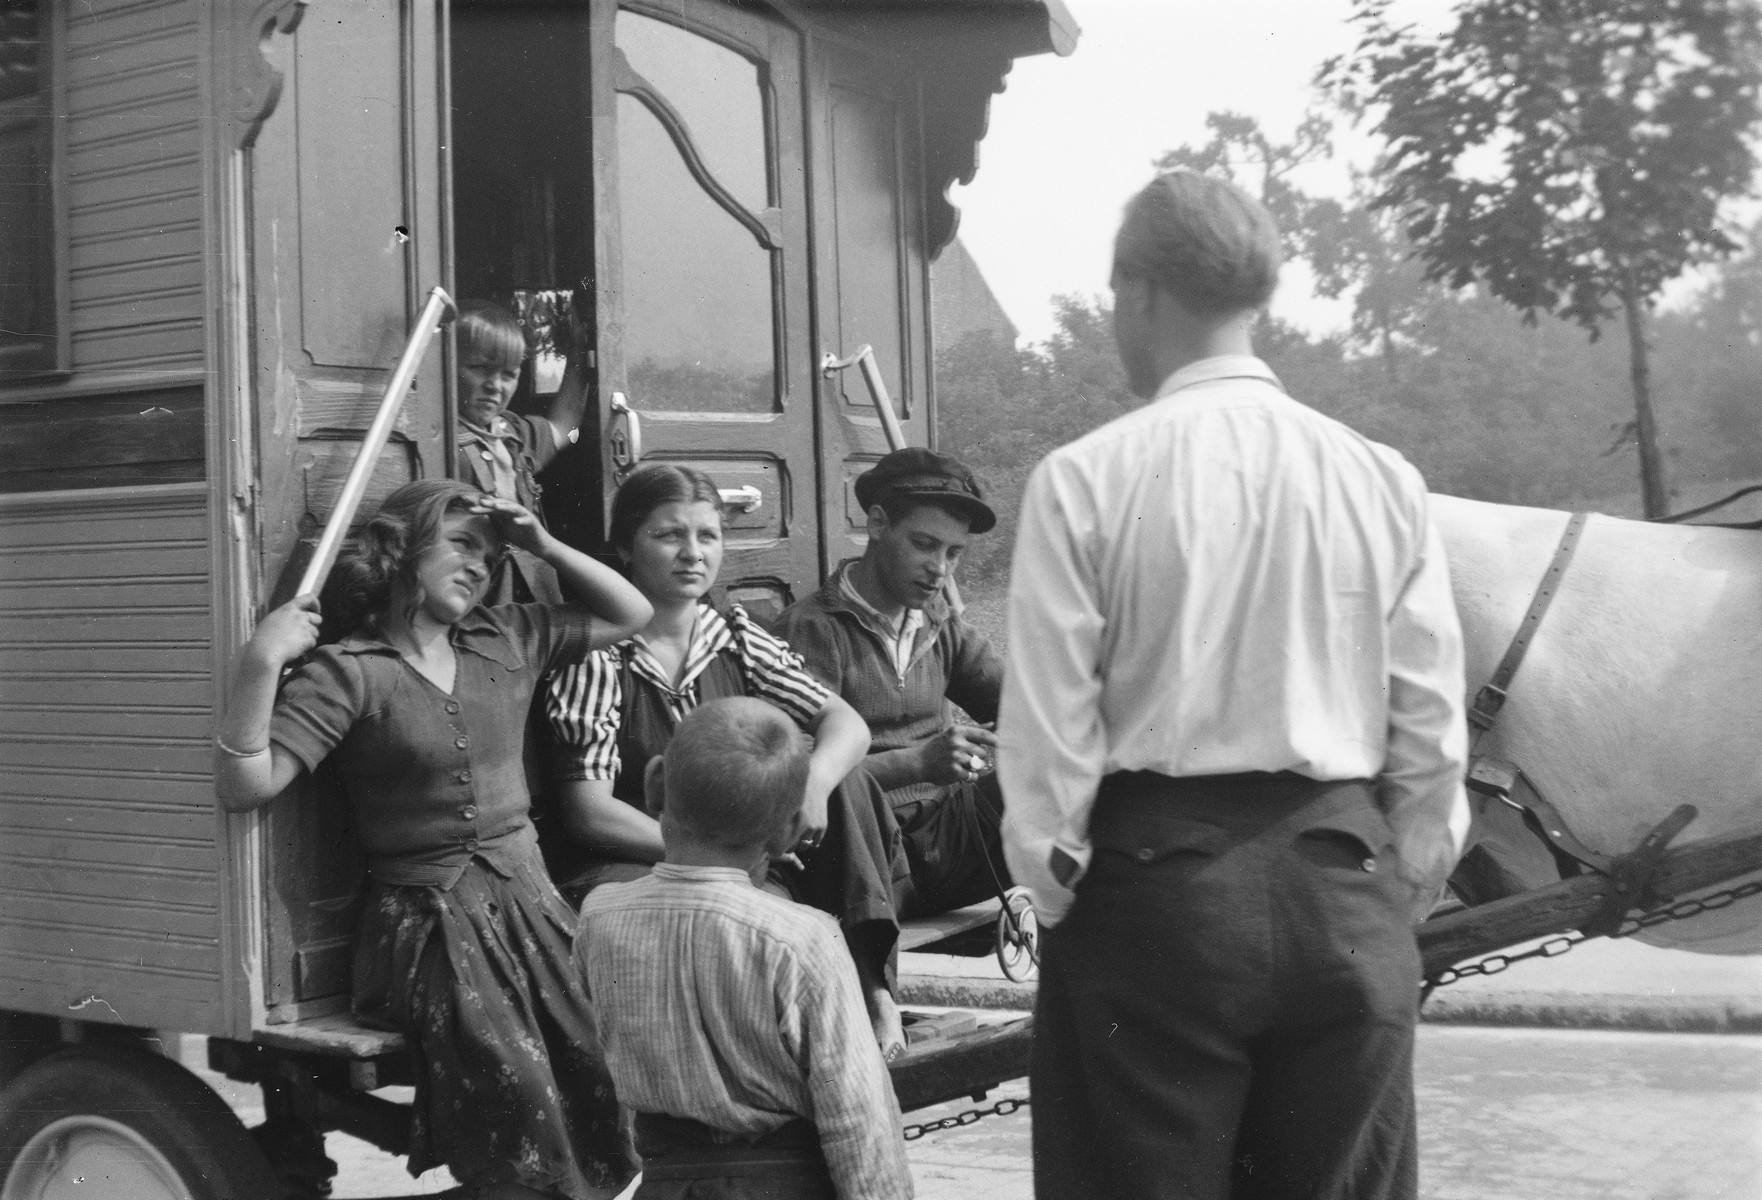 "A group of Roma (Gypsy) children gathered around the entrance to a caravan visit with with their friend, Jan Yoors (with back to the camera).  The caption in ""The Heroic Present"" reads, ""Jan Yoors (back to camera) and Lovara friends, Europe, 1930s."""